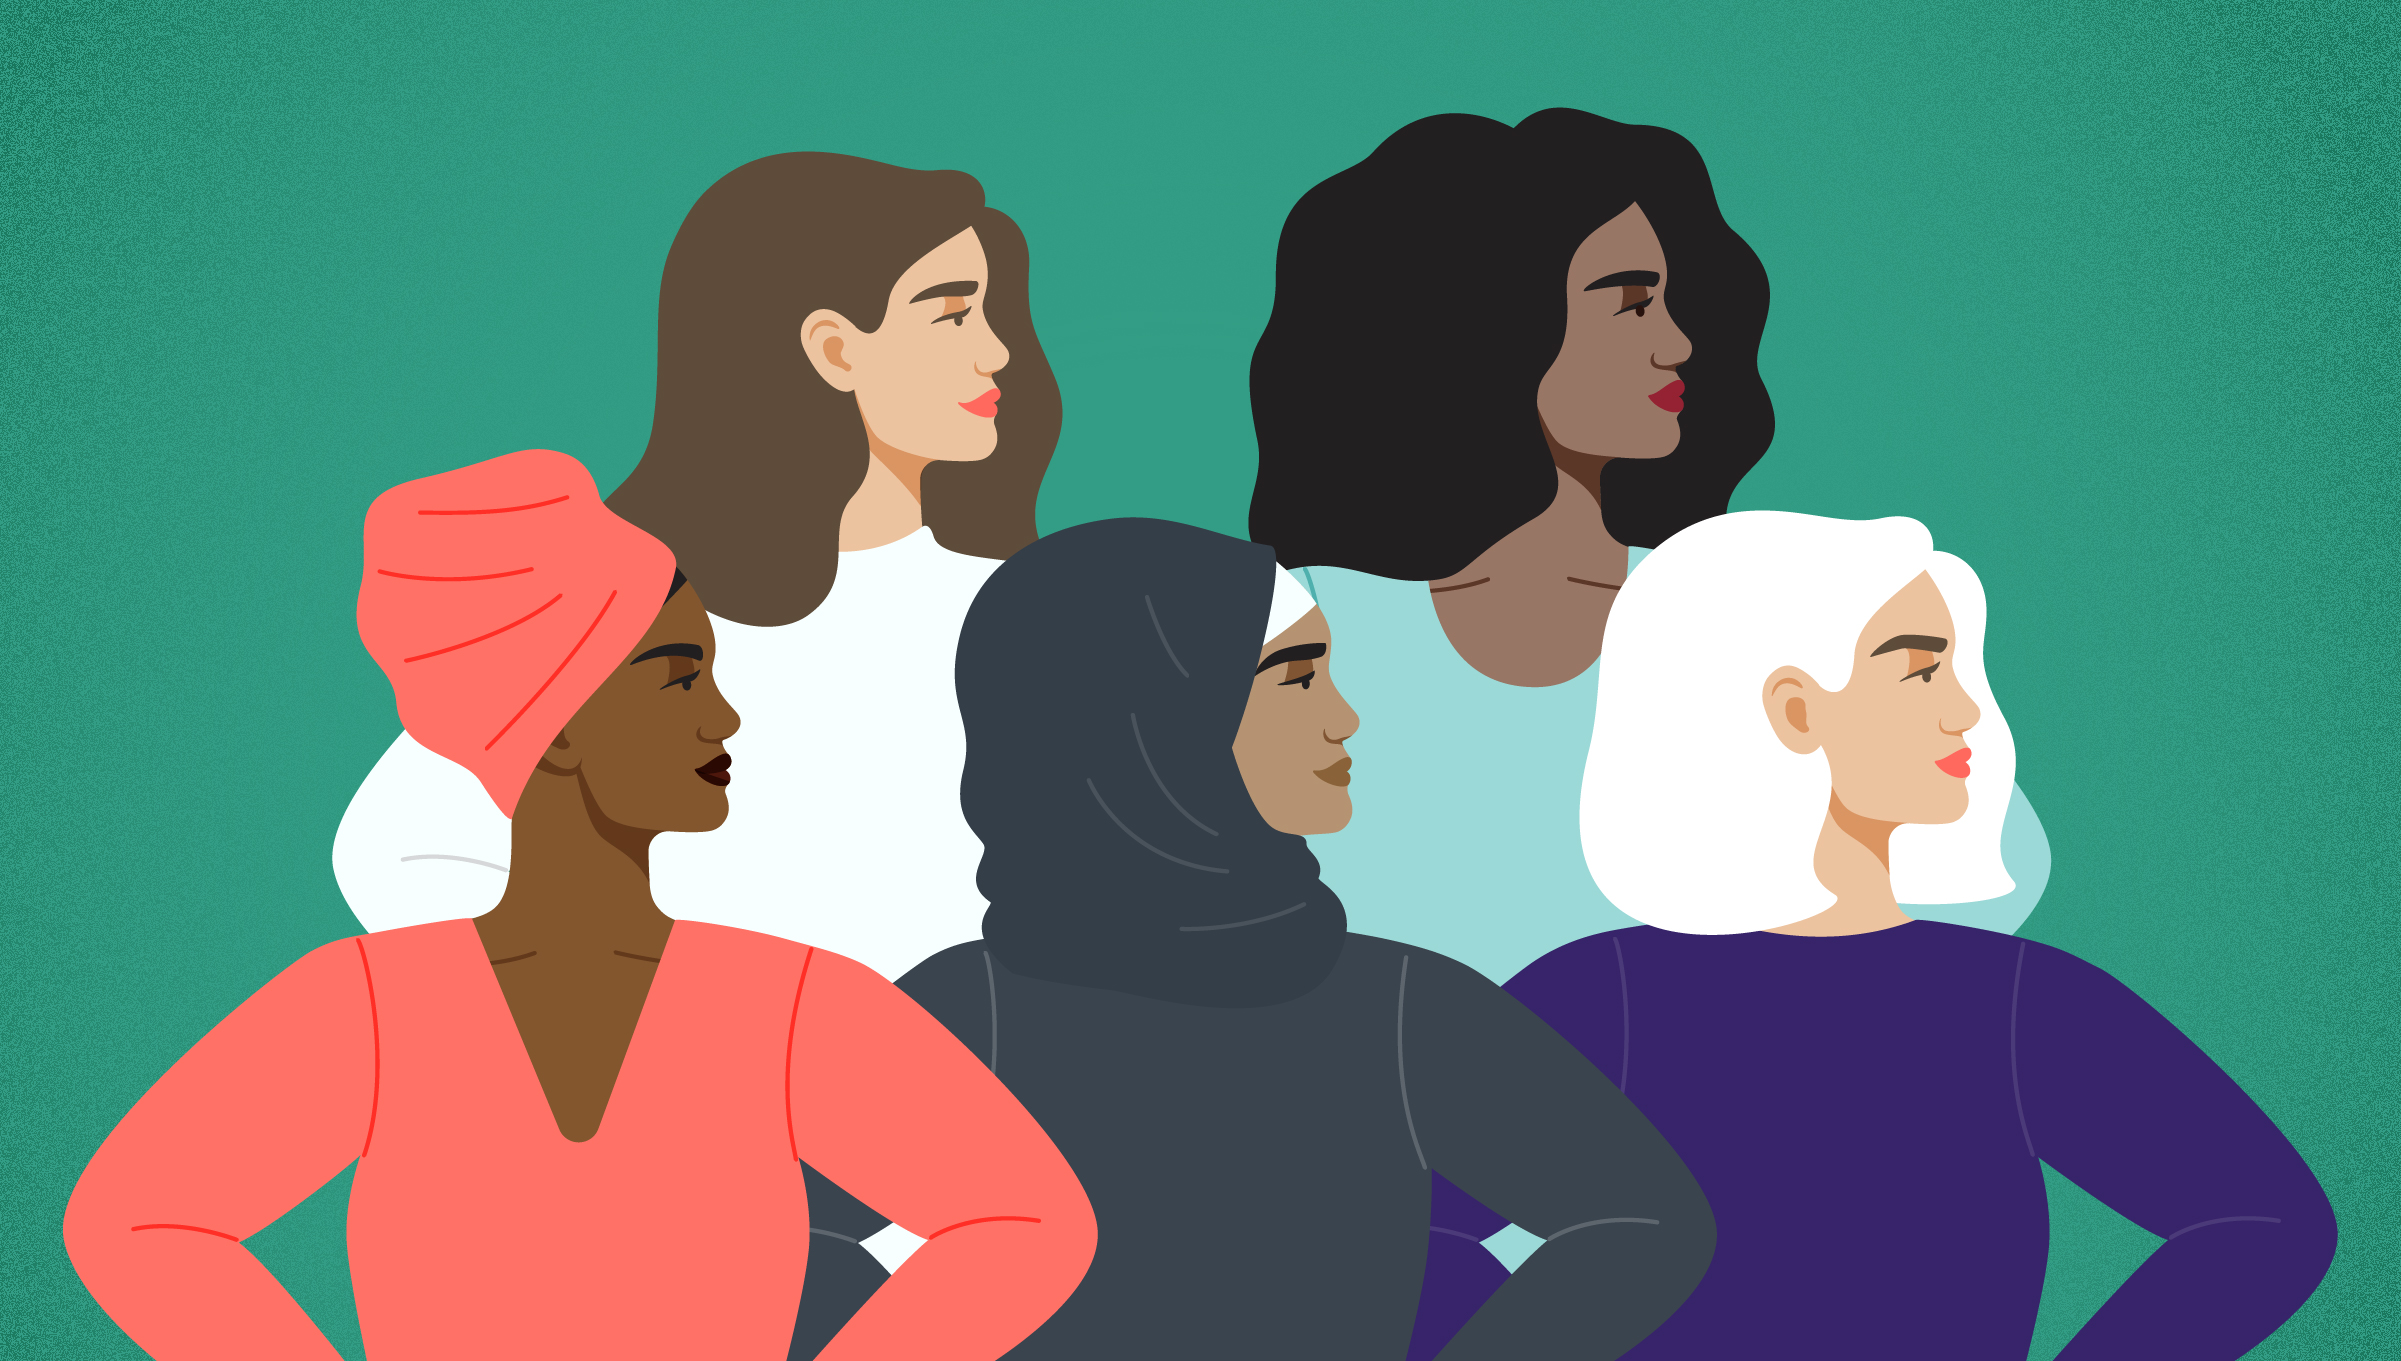 An illustration of a group of women.